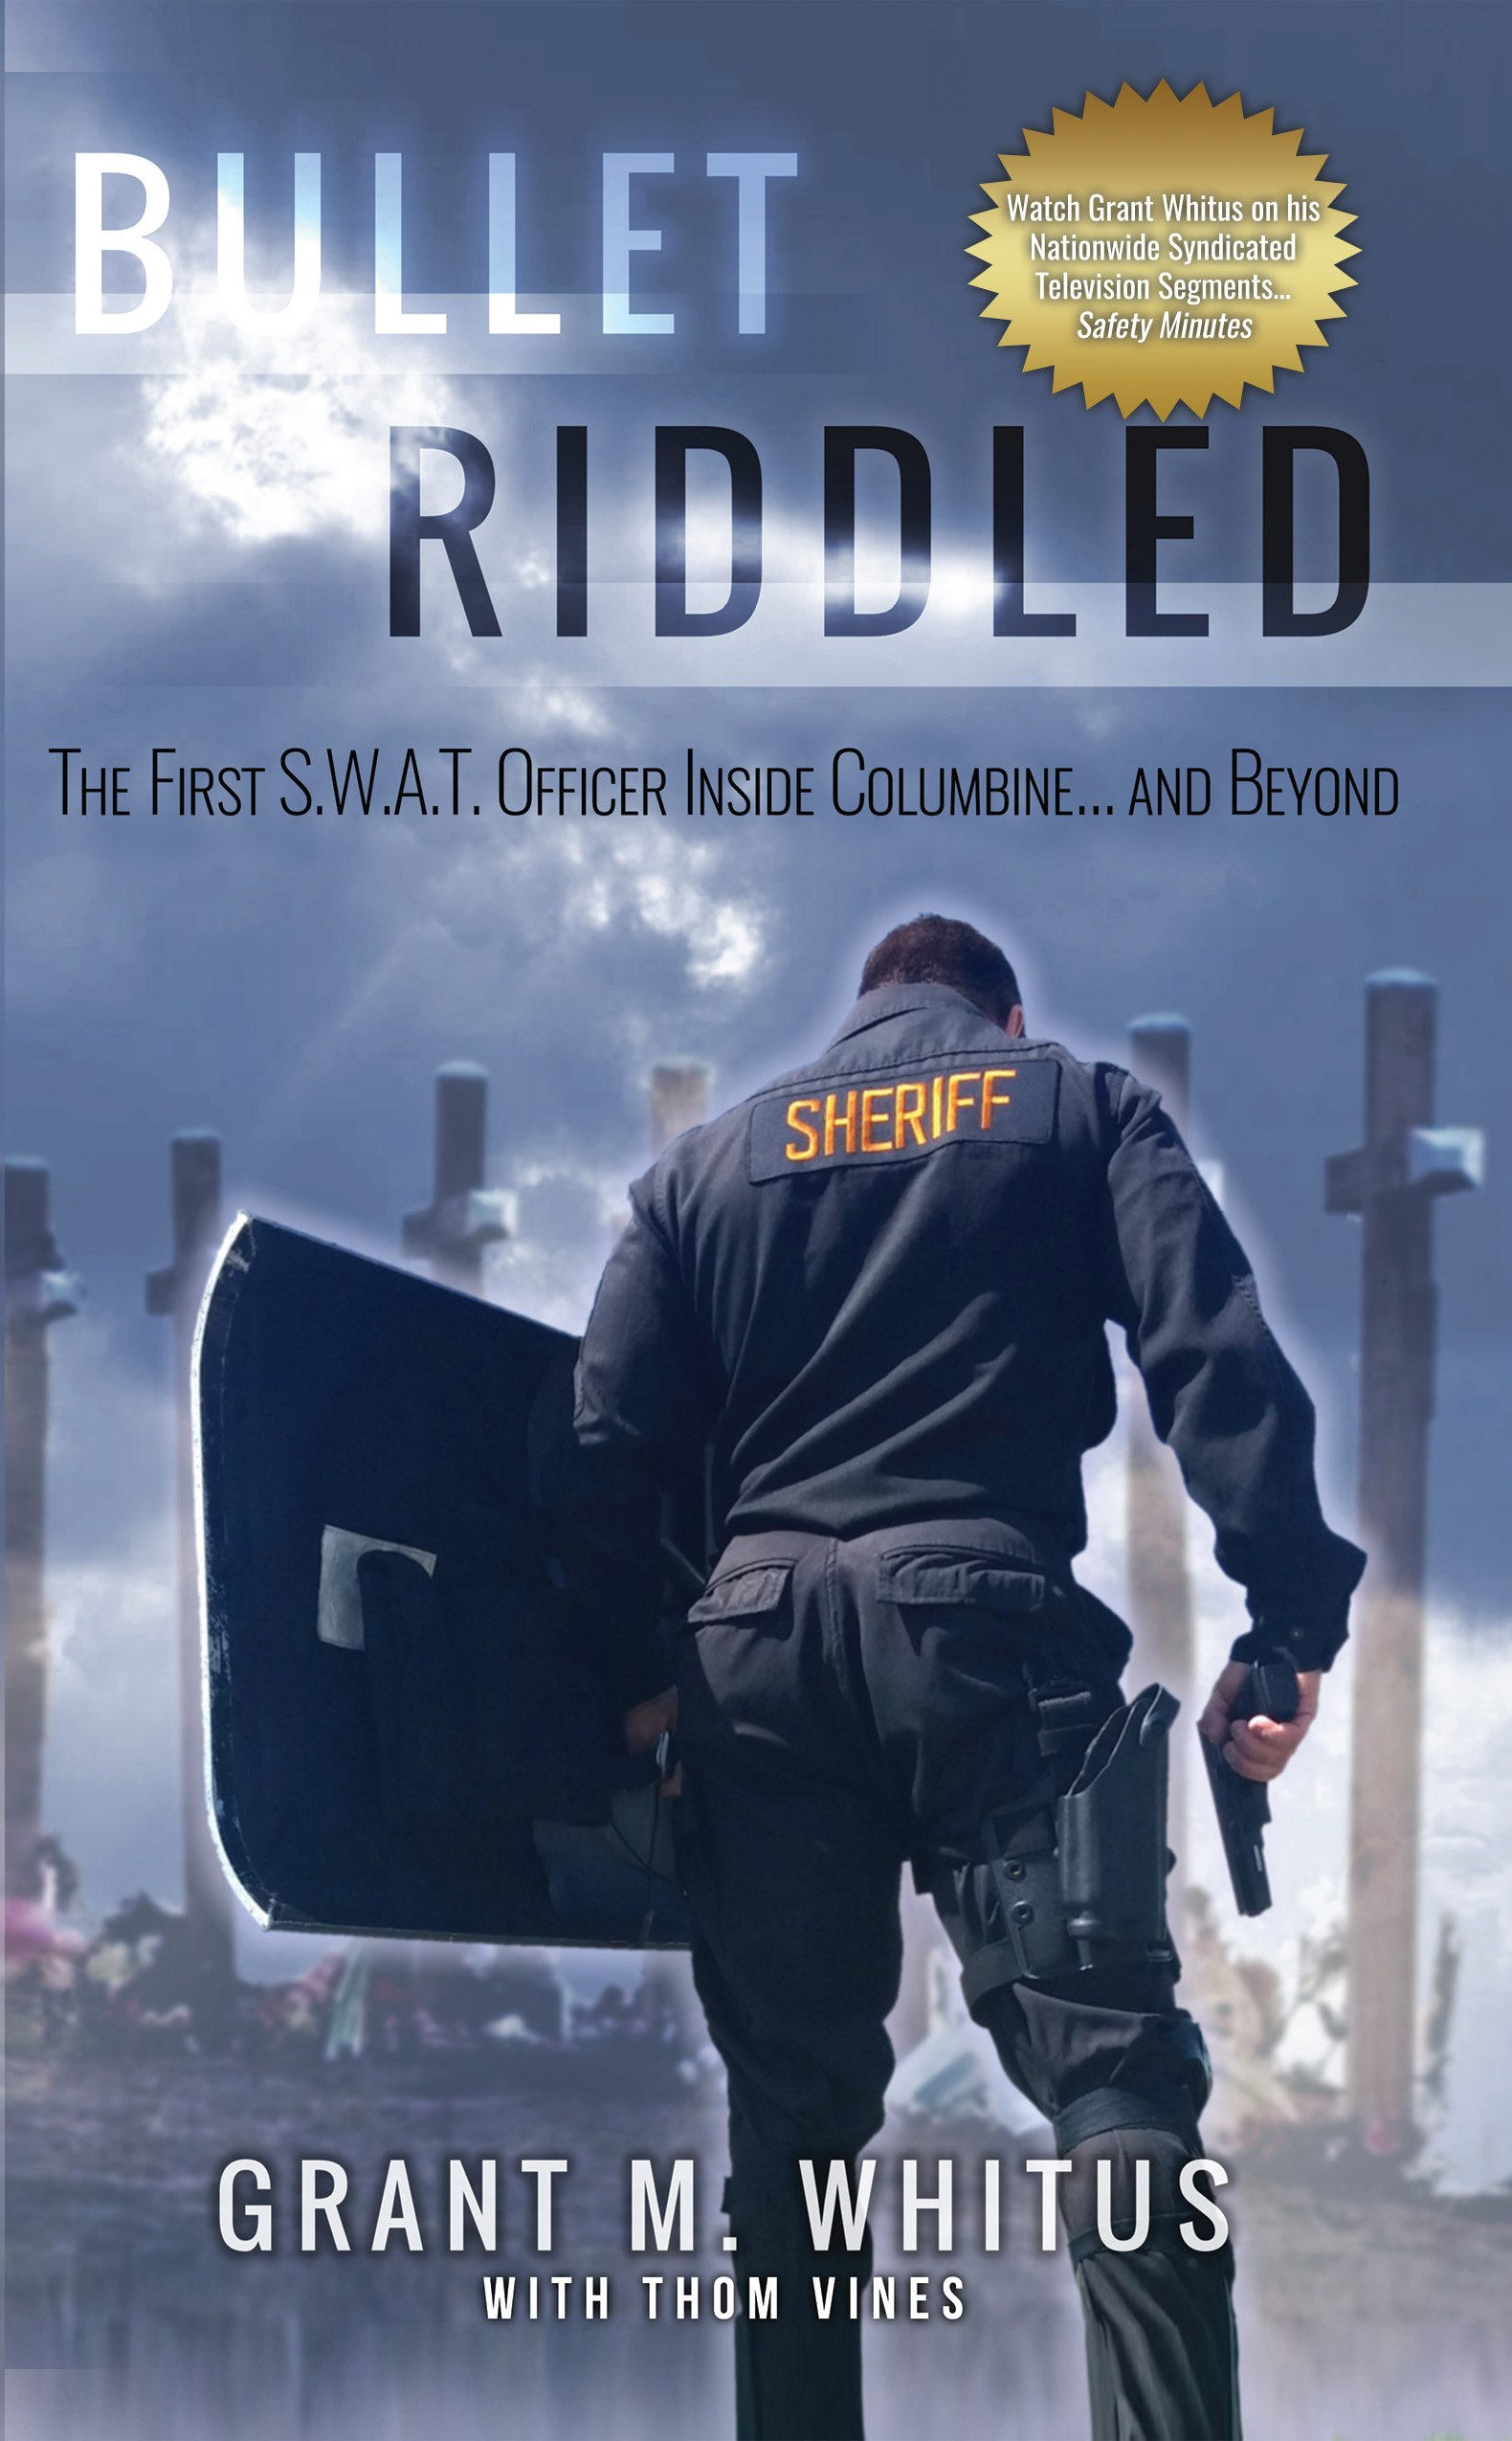 Bullet Riddled: The First S.W.A.T. Officer Inside Columbine… and Beyond